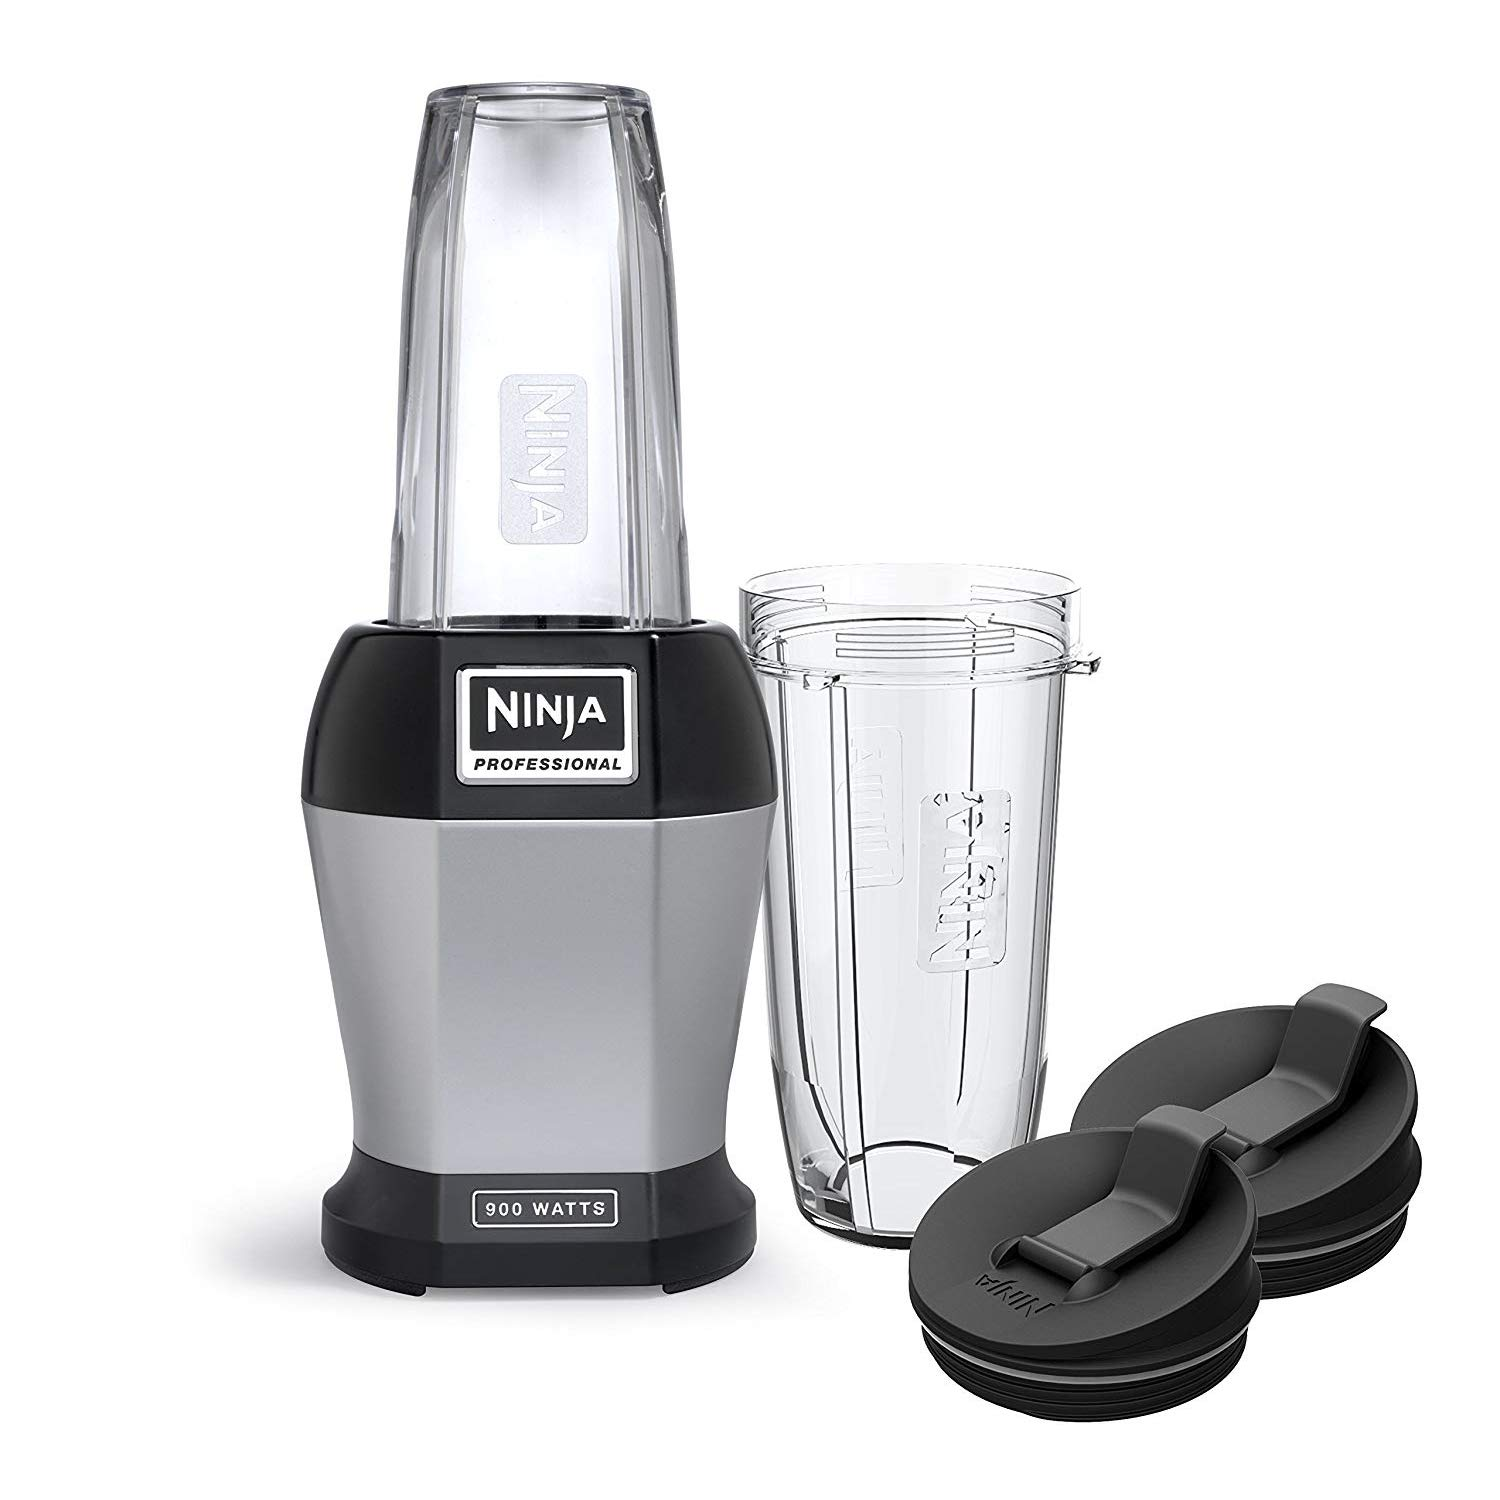 Nutri Ninja Pro BL450 Blender 900 Watts, Black (Renewed)